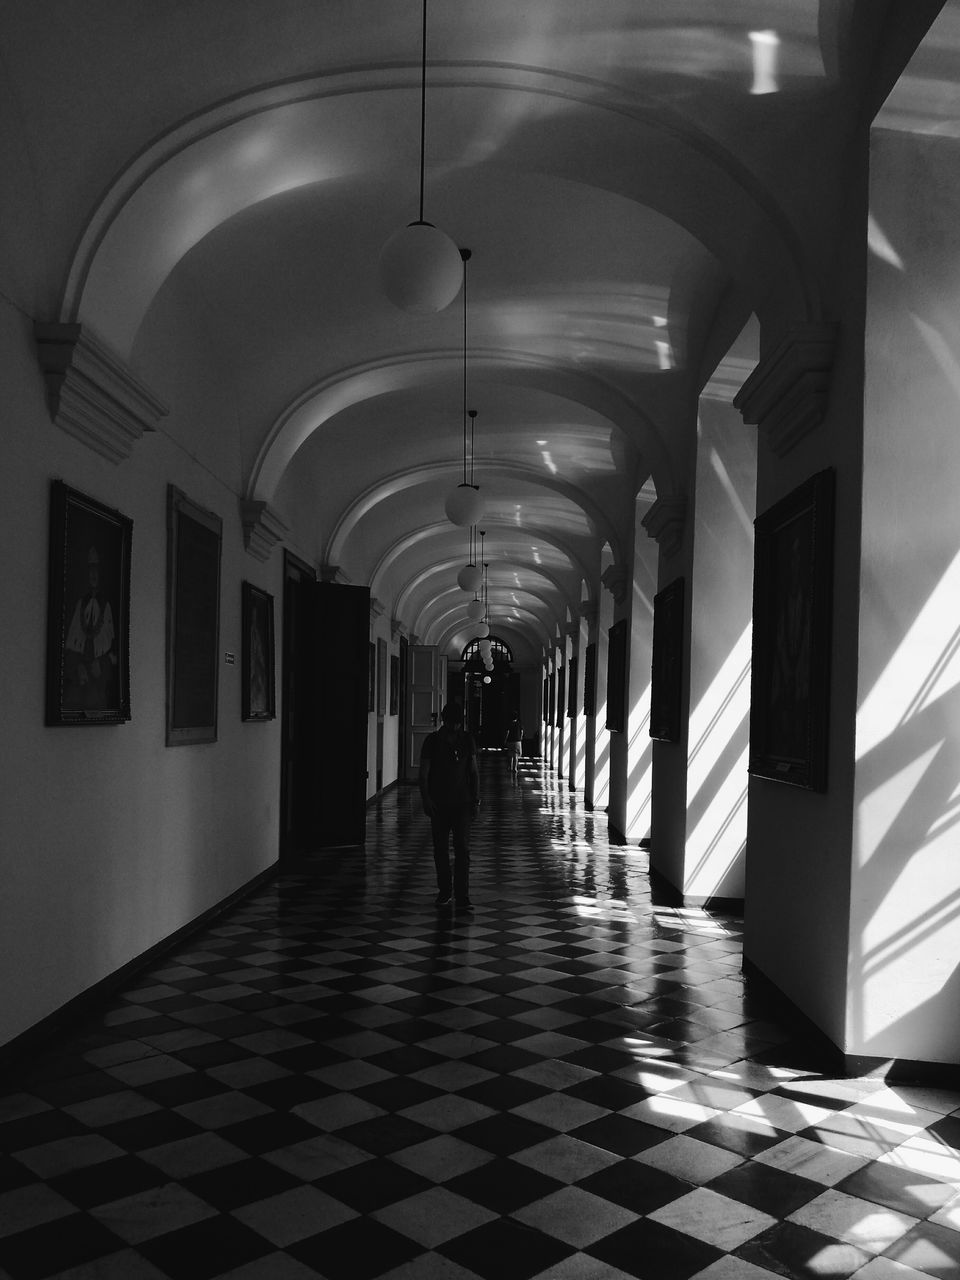 arch, corridor, indoors, the way forward, ceiling, architecture, real people, built structure, full length, illuminated, architectural column, one person, day